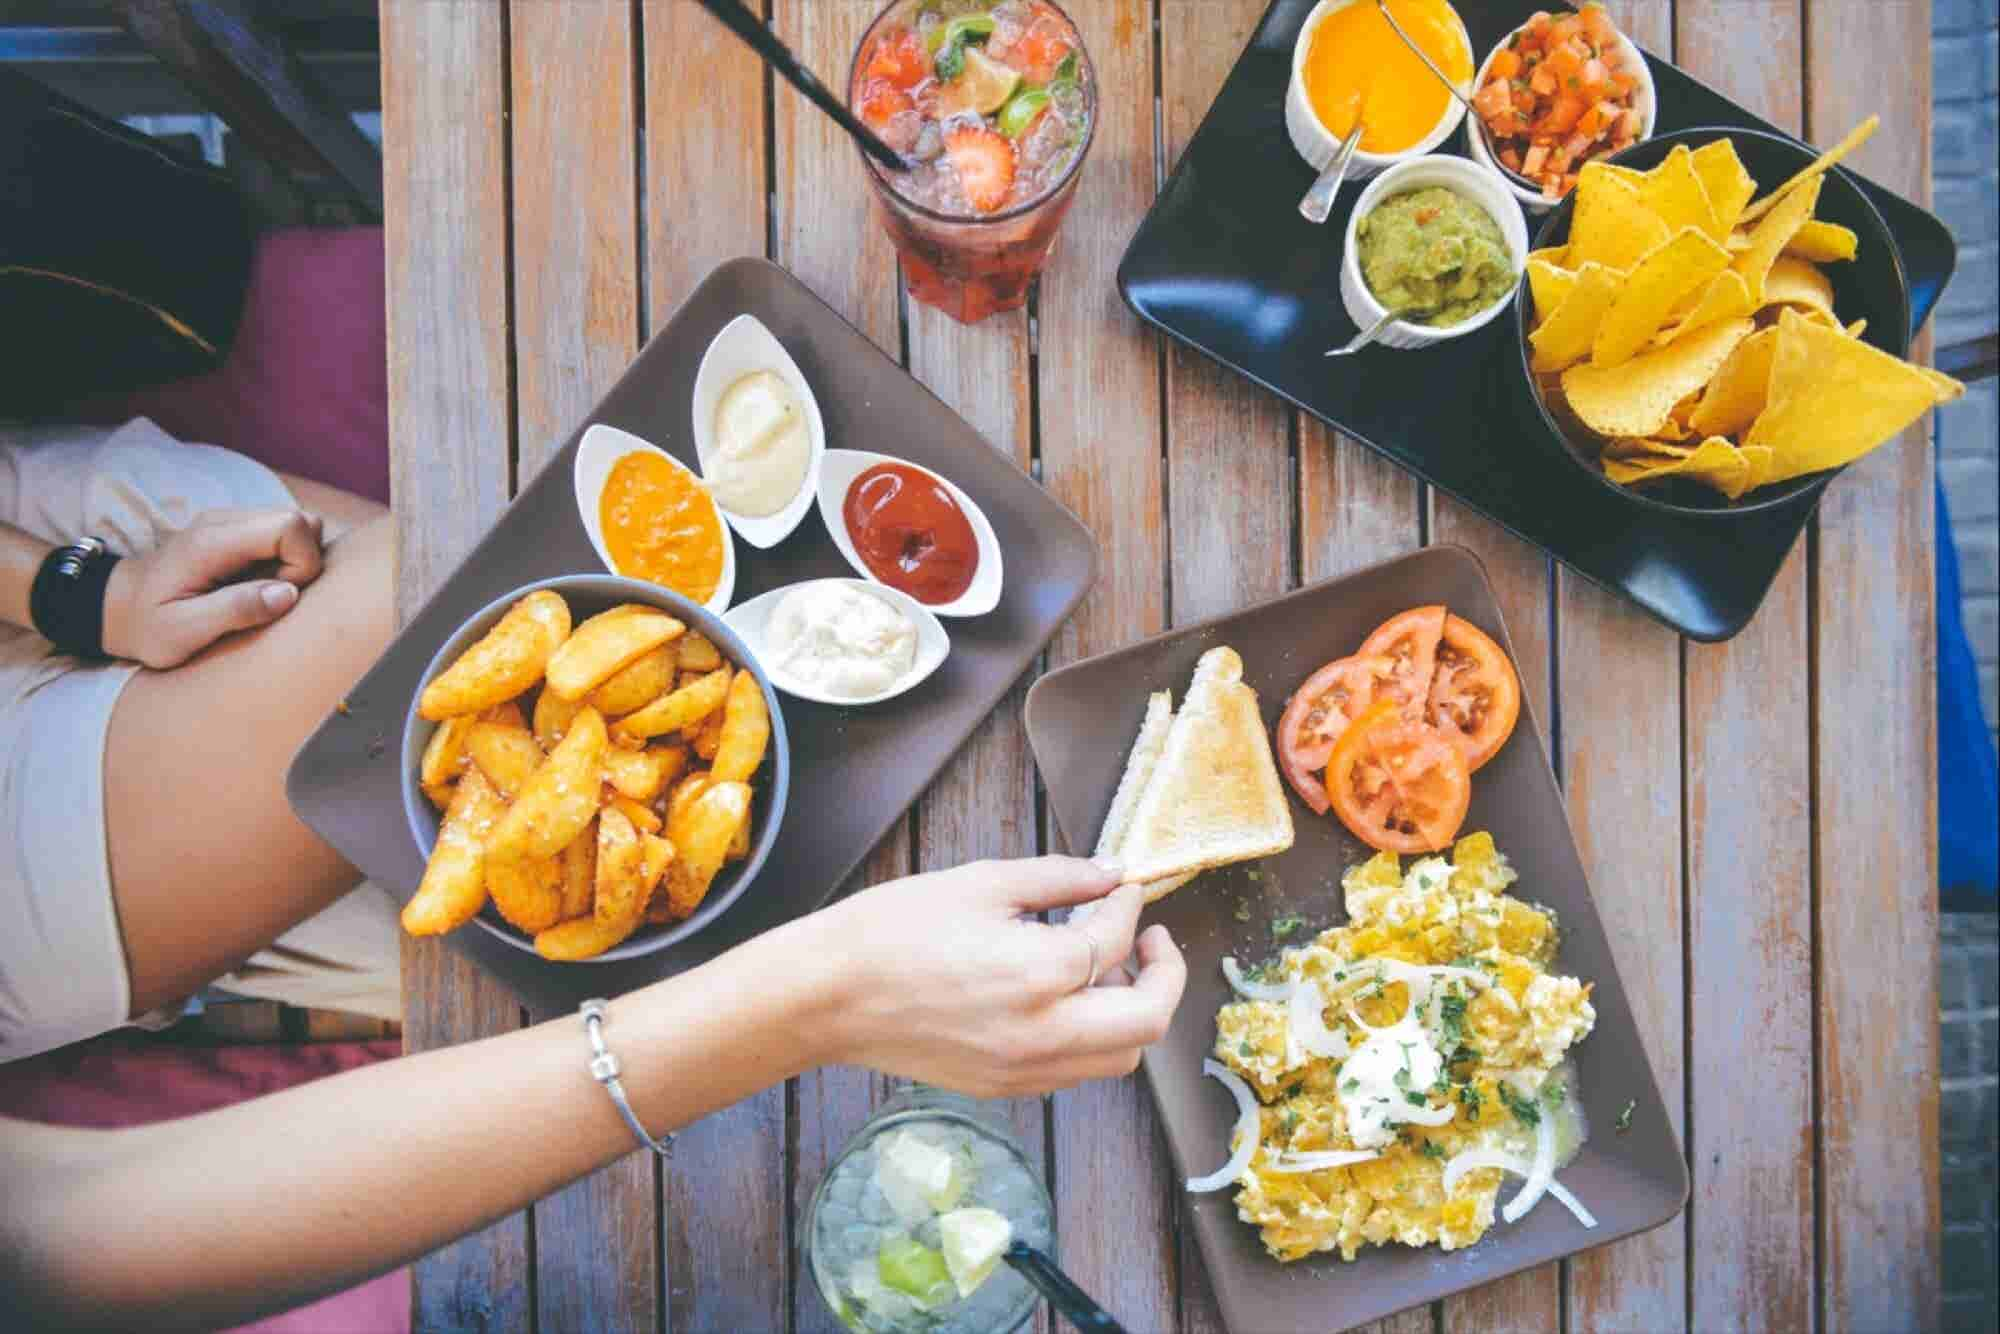 Industry Snapshot: A Quick Look at the Specialty Food Industry